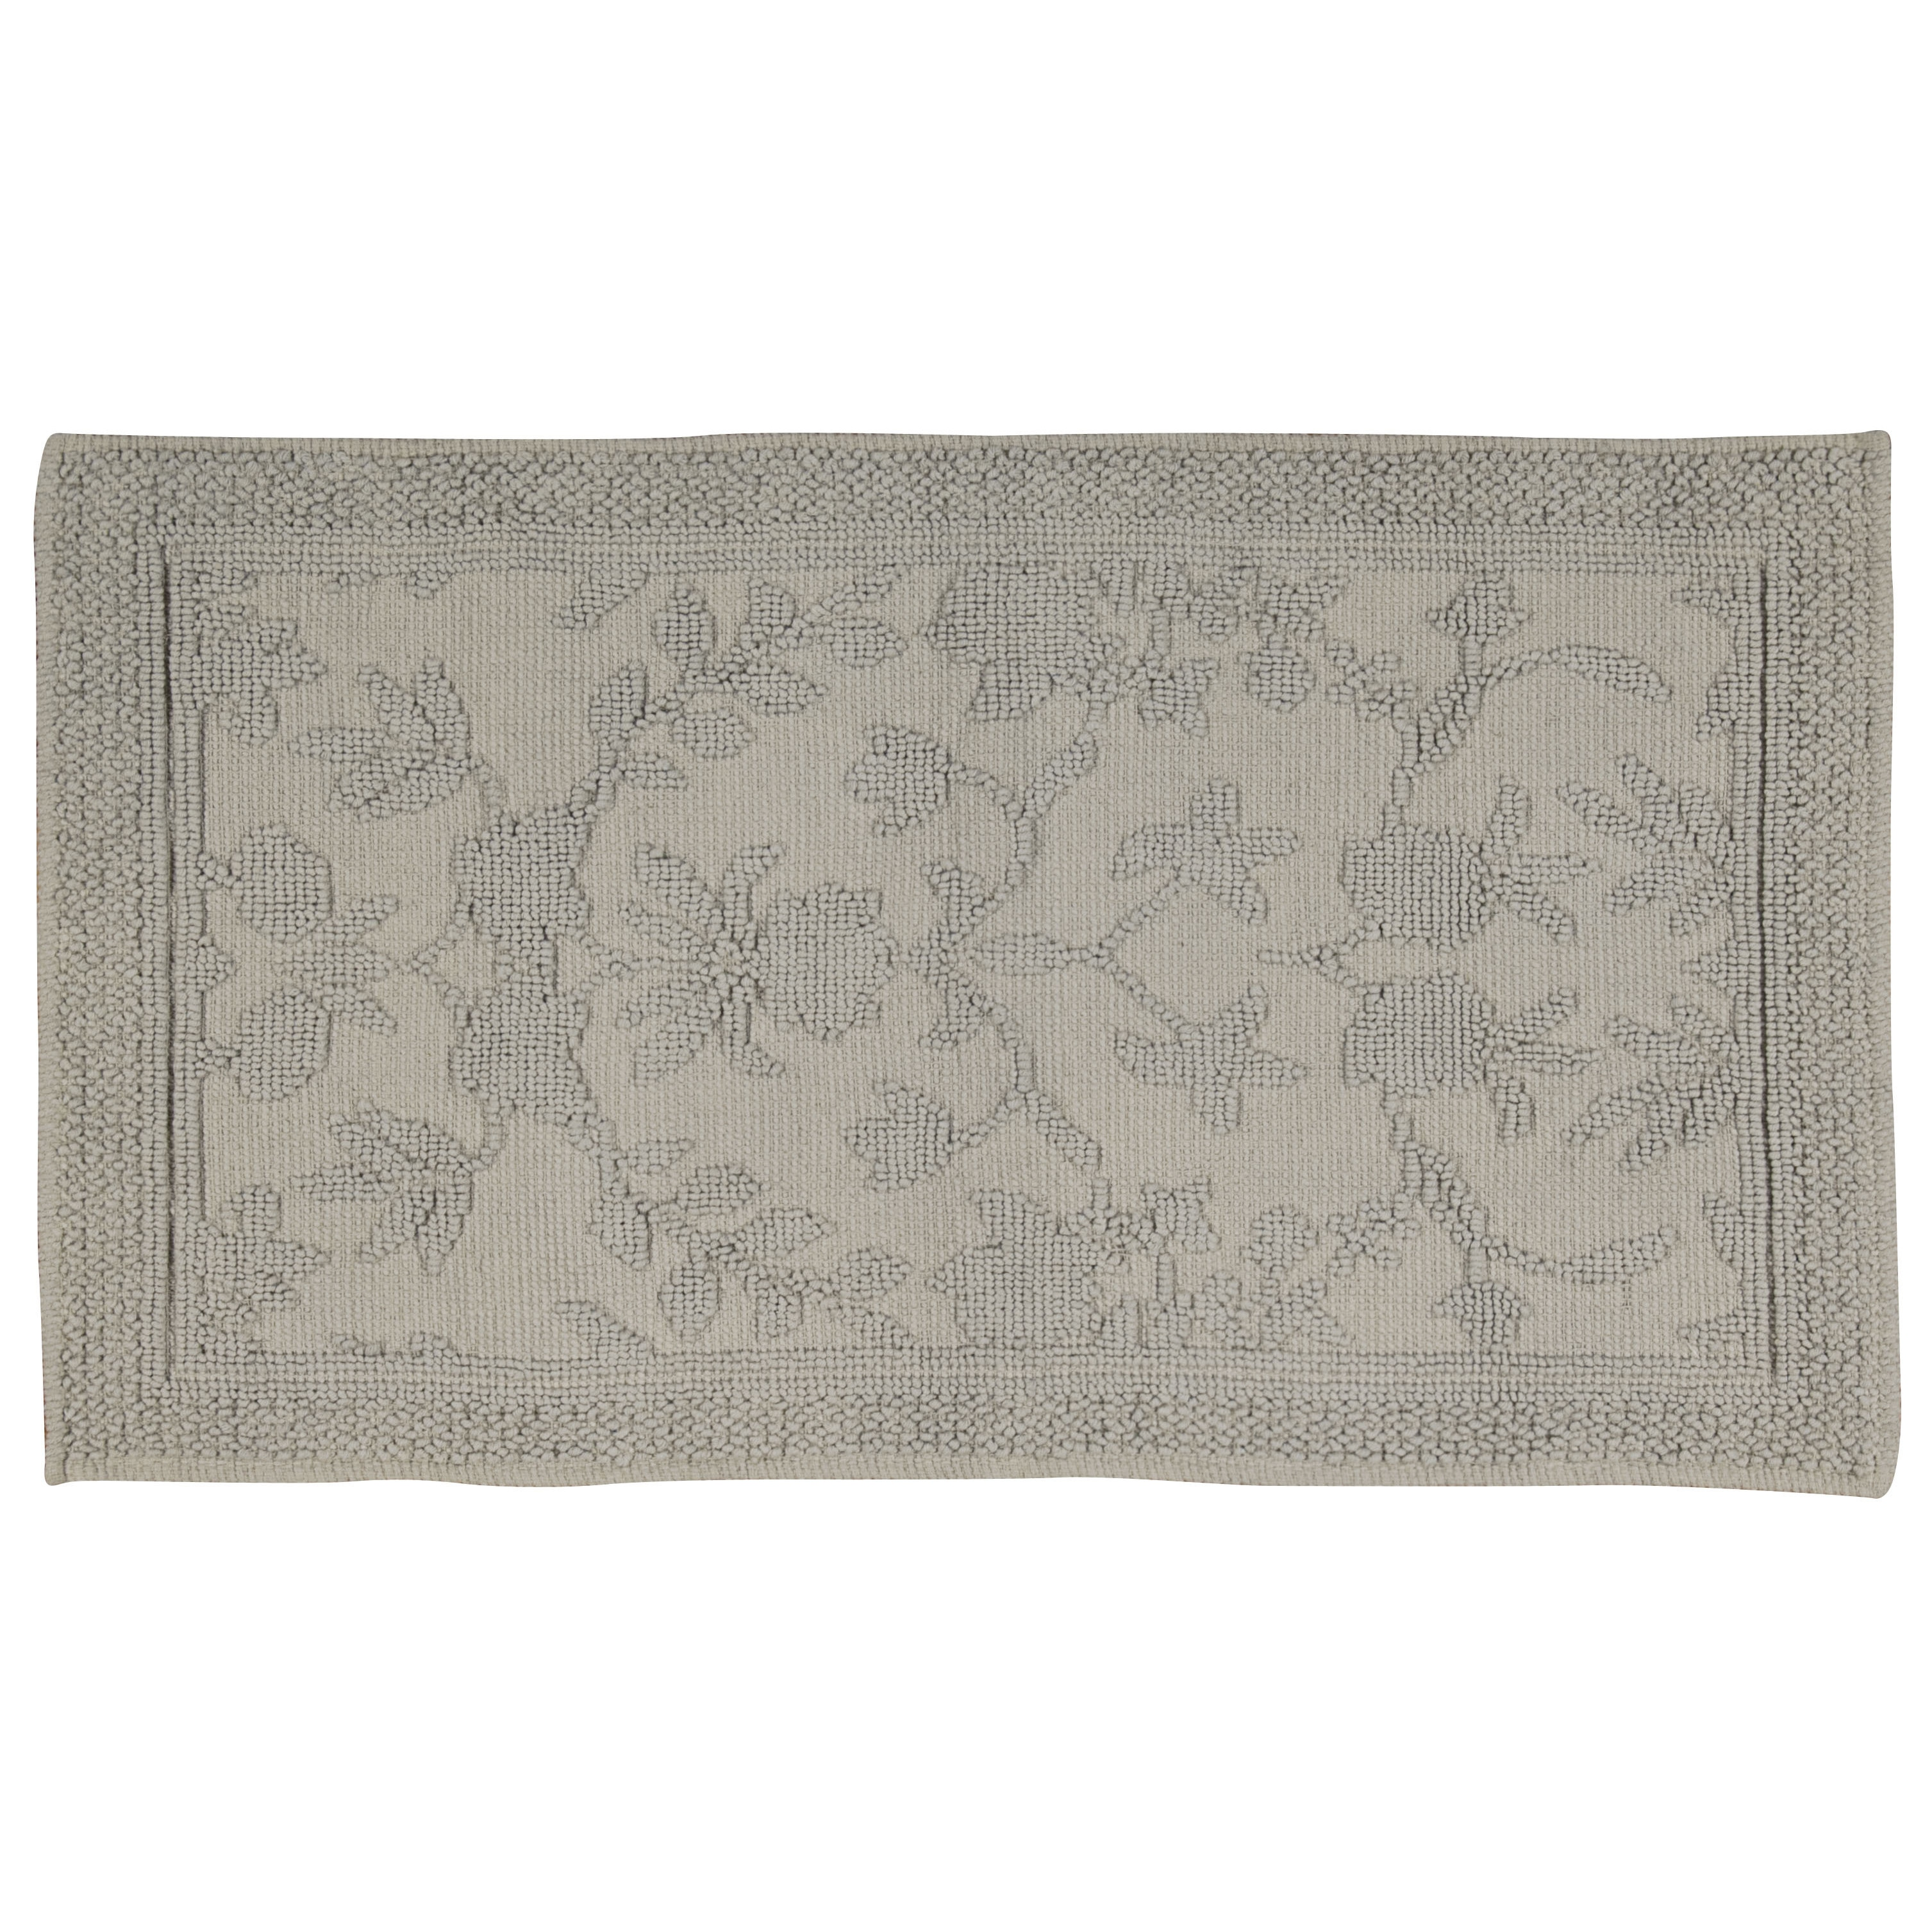 Waverly Refresh Fl Bath Rug 1 9 X 2 10 By Nourison Free Shipping On Orders Over 45 12142398